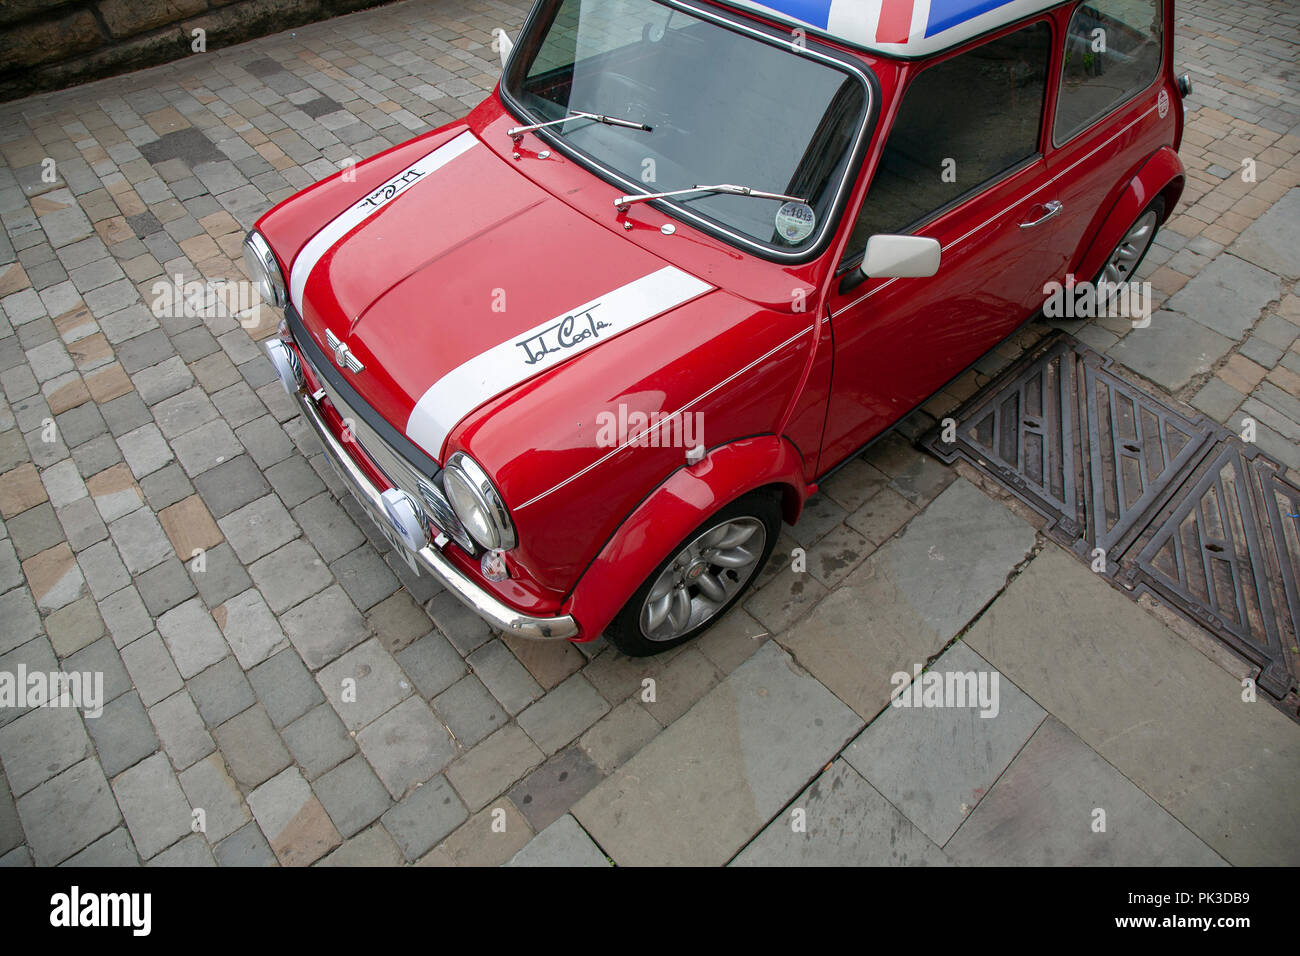 A Red Mini Cooper wth a Union Jack Roof by John Cooper version of the mini parked on a cobbled street in Huddersfield - Stock Image